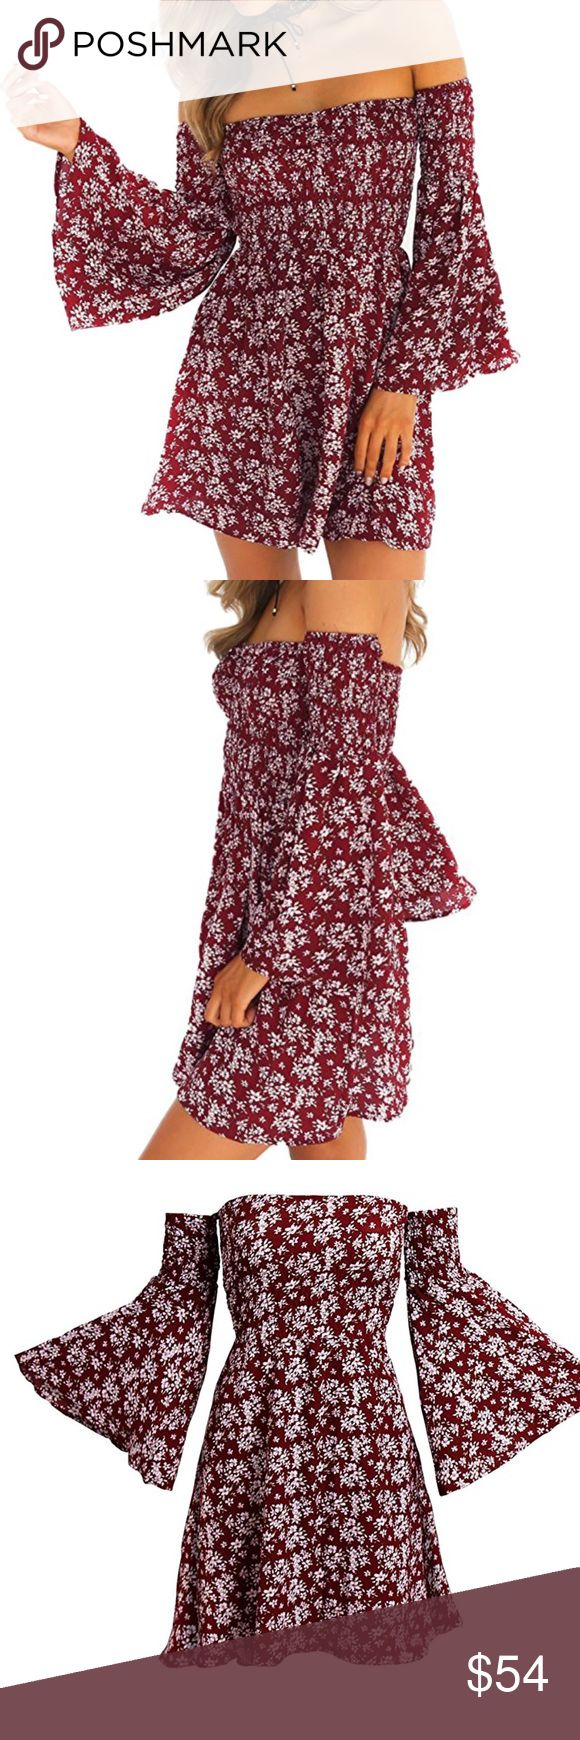 🌺Festival Dress 🌺 Free Shipping - details below! ✨Trendy, flowy, floral festival dress perfect for any outdoor event!   ✨90% Polyester, 10% Spandex - stretchy by the arms and is breathable, NOT tight and uncomfortable!   BUNDLE TO SAVE‼️ BUNDLE 2+ FOR FREE SHIPPING ‼️ drtstyle Dresses Mini